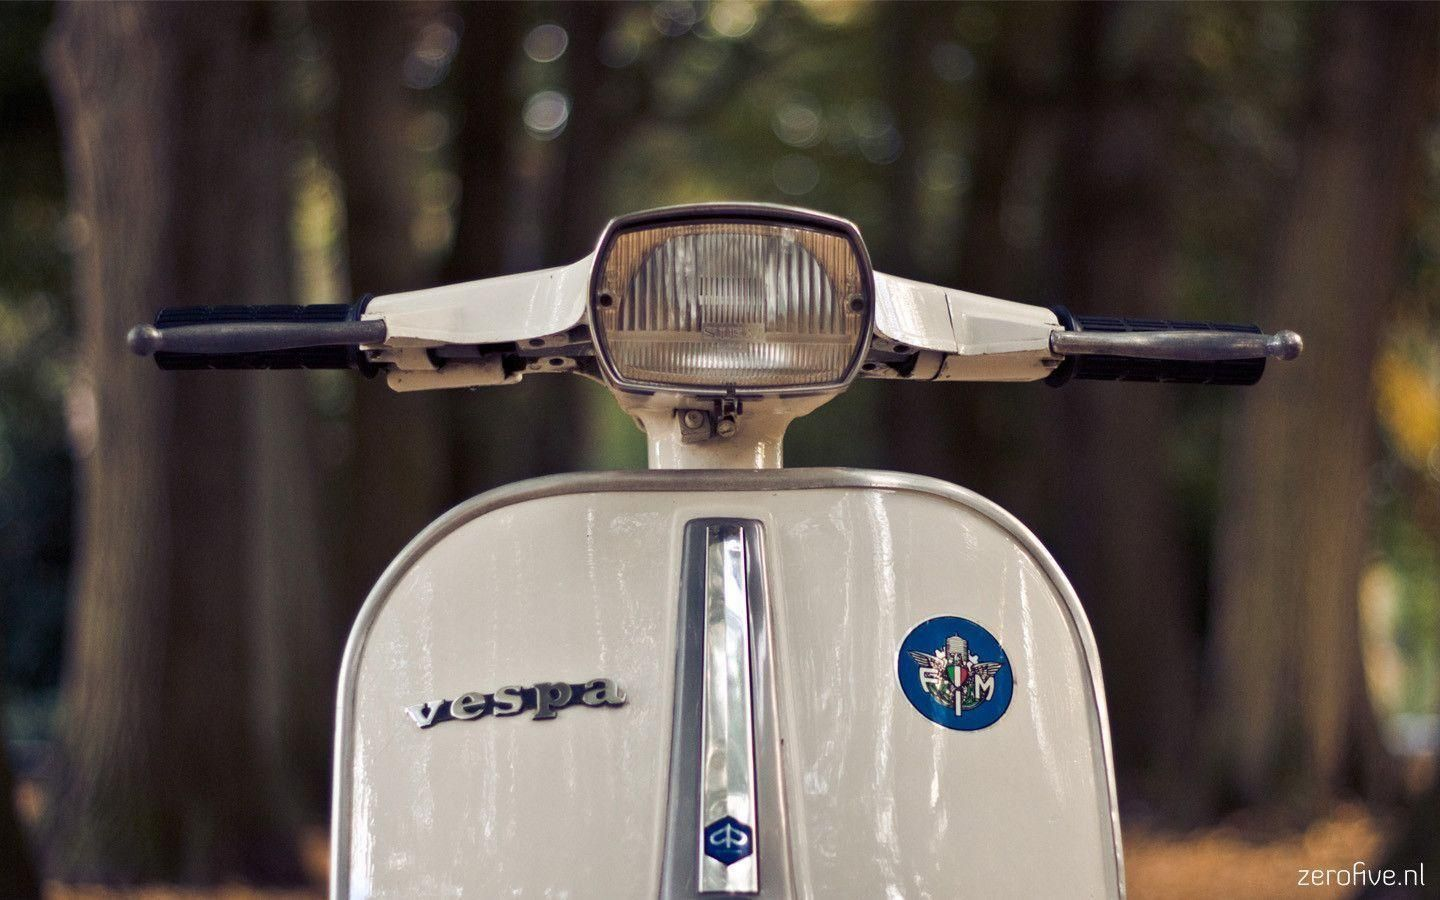 Vespa Bike Full Hd Wallpapers Free Download 20 With Images